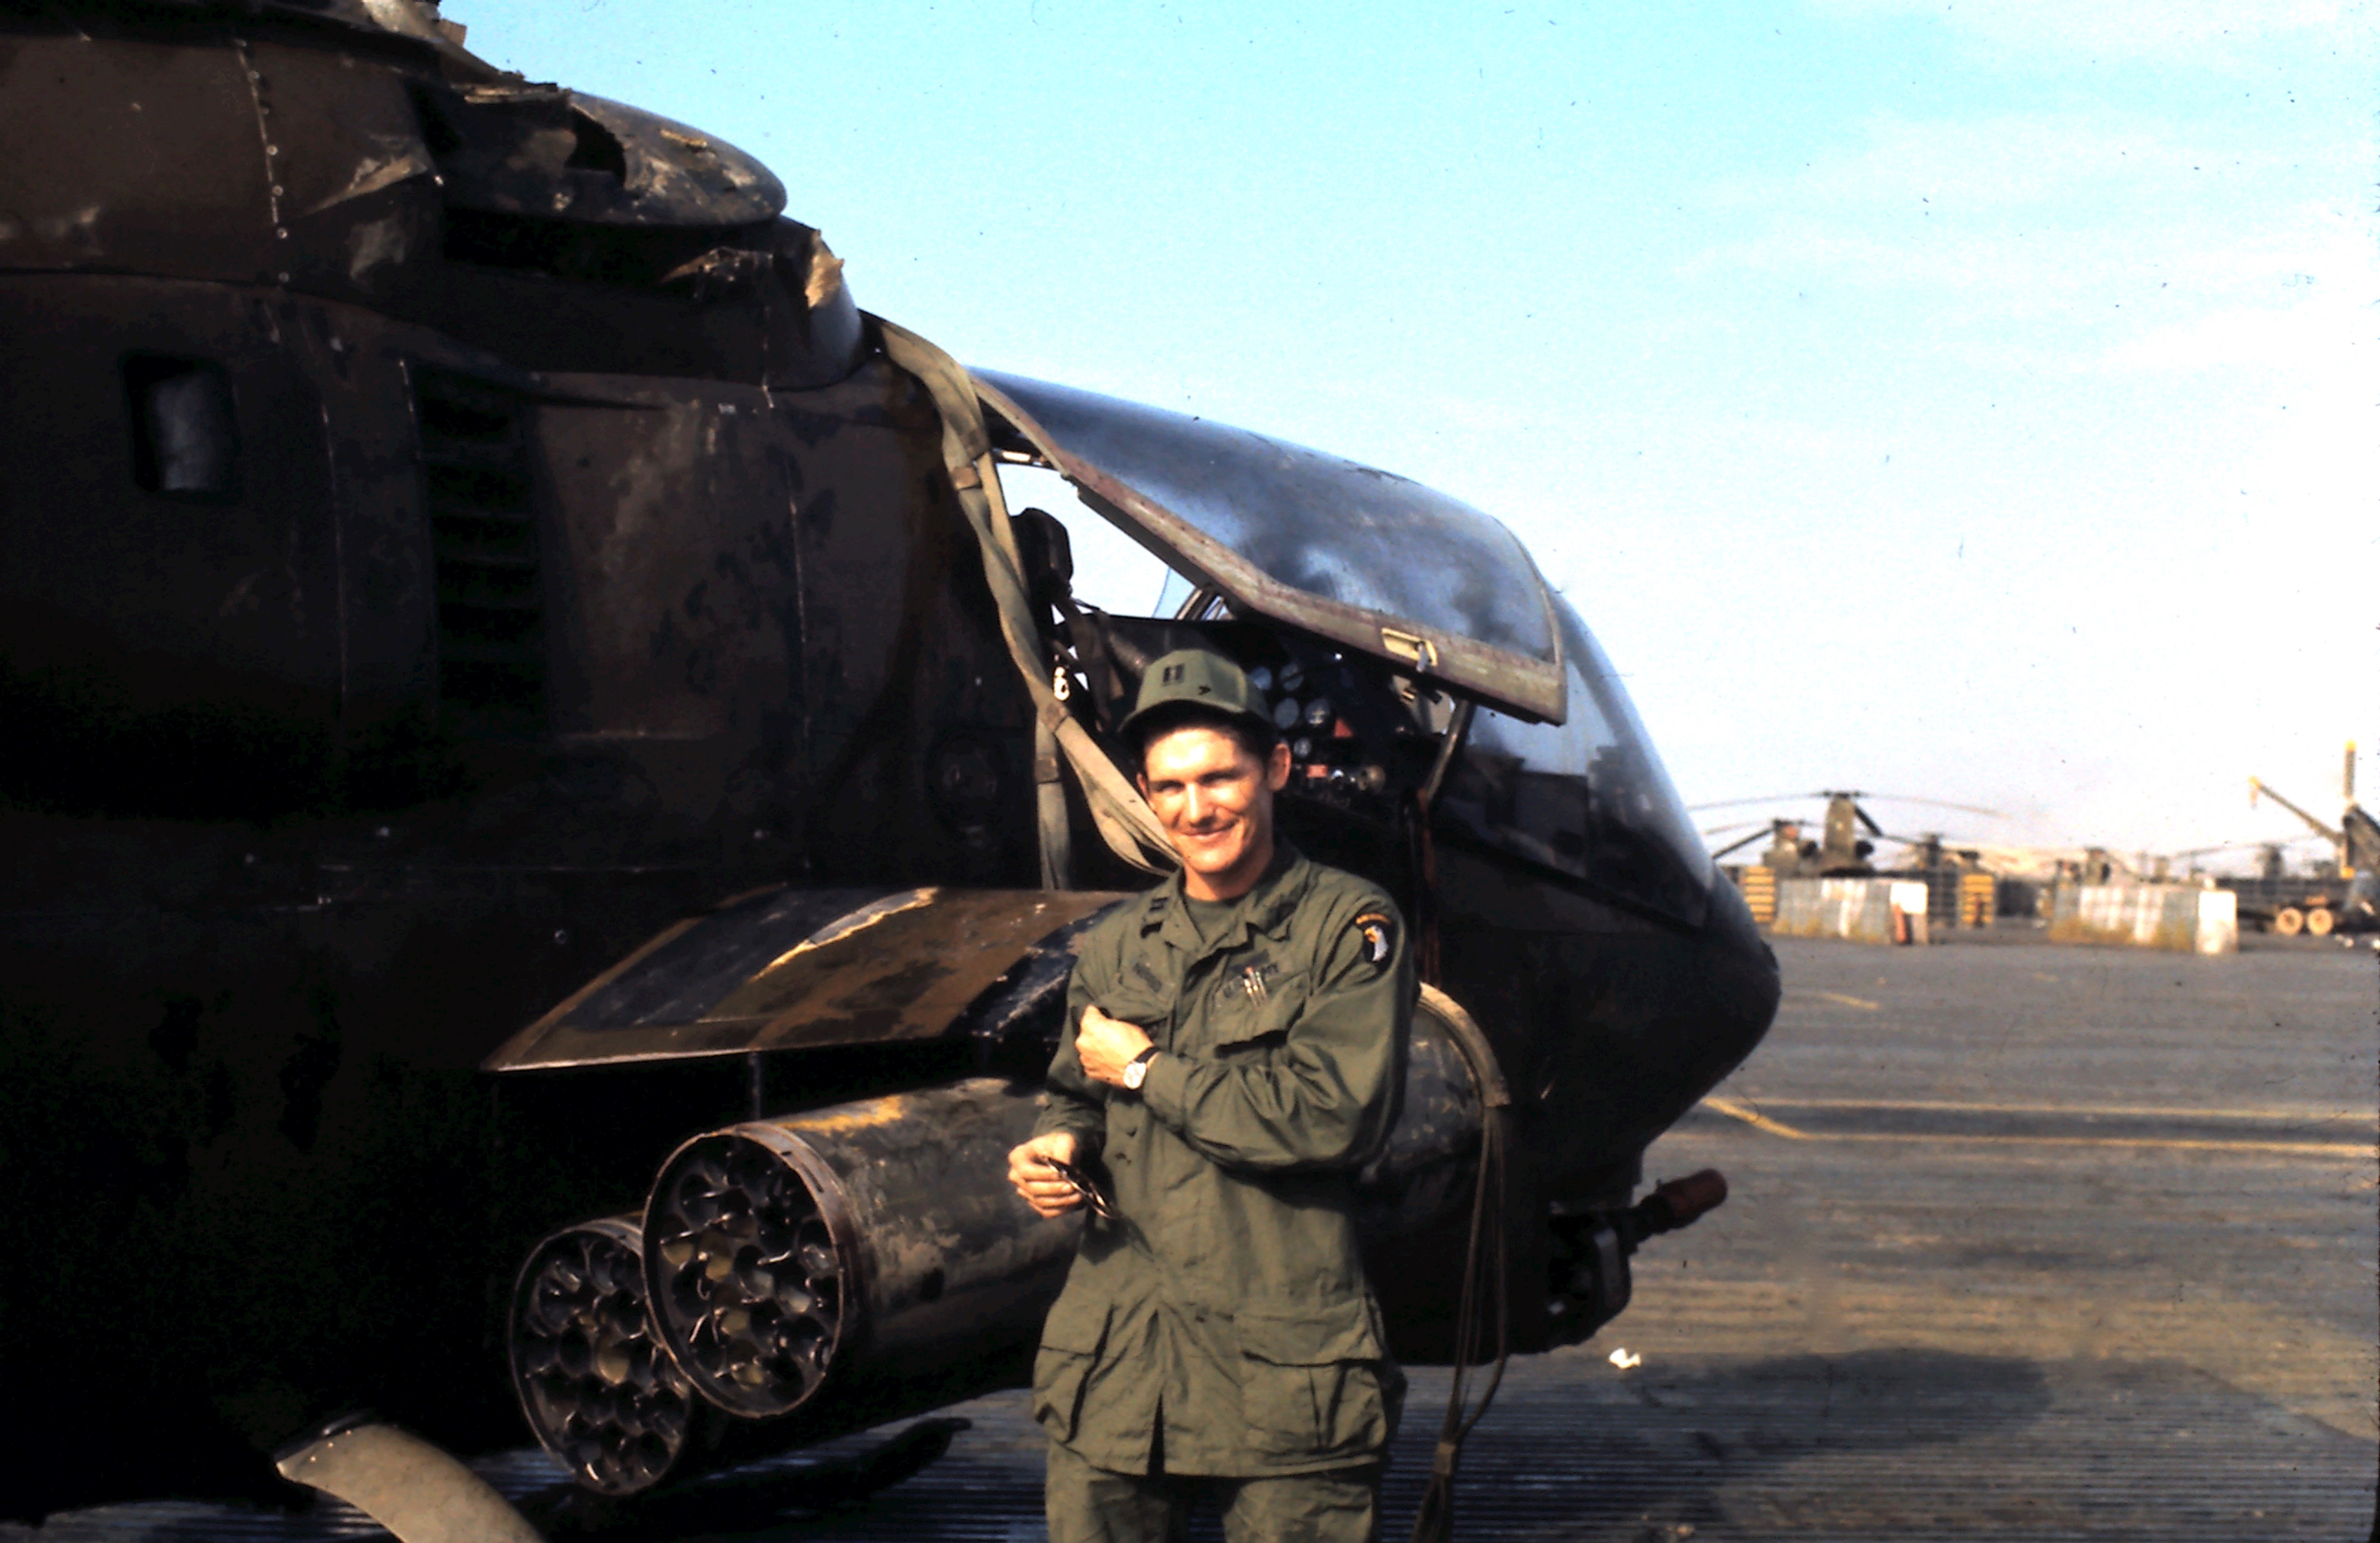 Capt. Michael E. Neufeld stands in front of a Cobra attack helicopter on Jan. 20, 1972 at an Army base in Phu Bai, Vietnam. A day earlier, Neufeld was shot down while flying the helicopter and survived. The helicopter is the centerpiece of a new Vietnam veterans memorial in Tonawanda. Photo courtesy of Jimmie D. Ferguson.